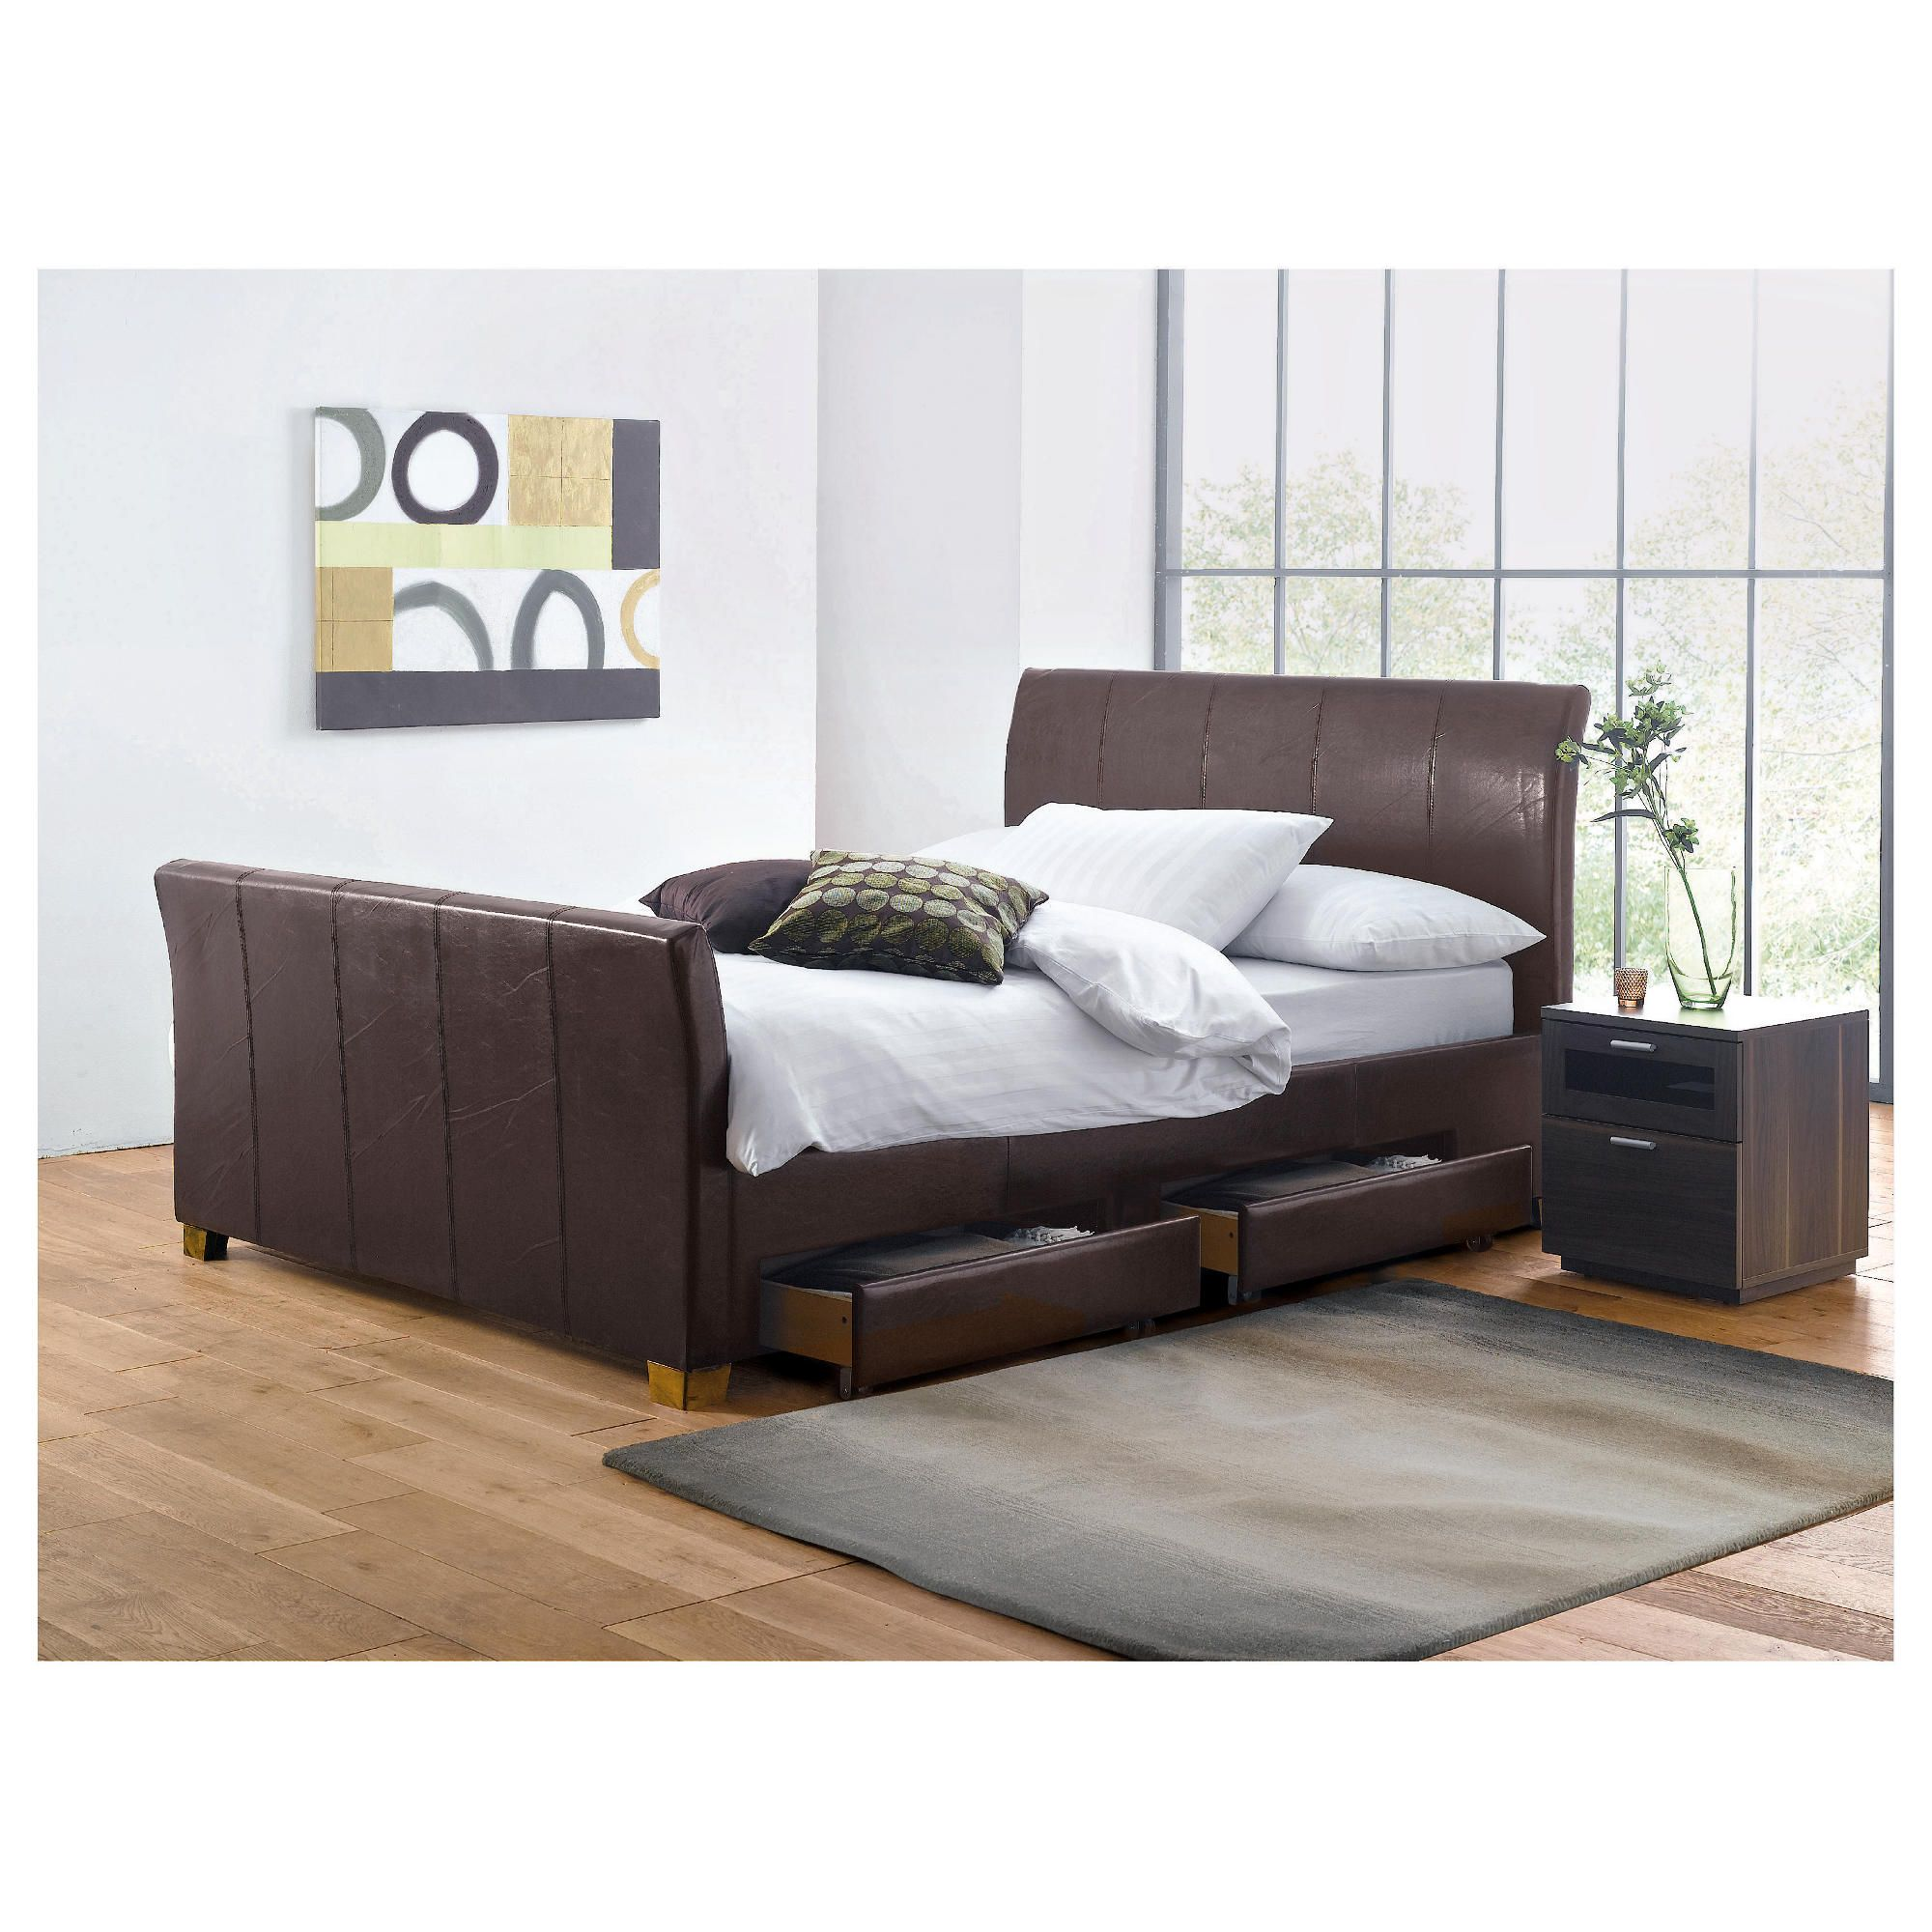 Rayne Double Faux Leather Bed Frame with 4 Drawers, Brown at Tesco Direct